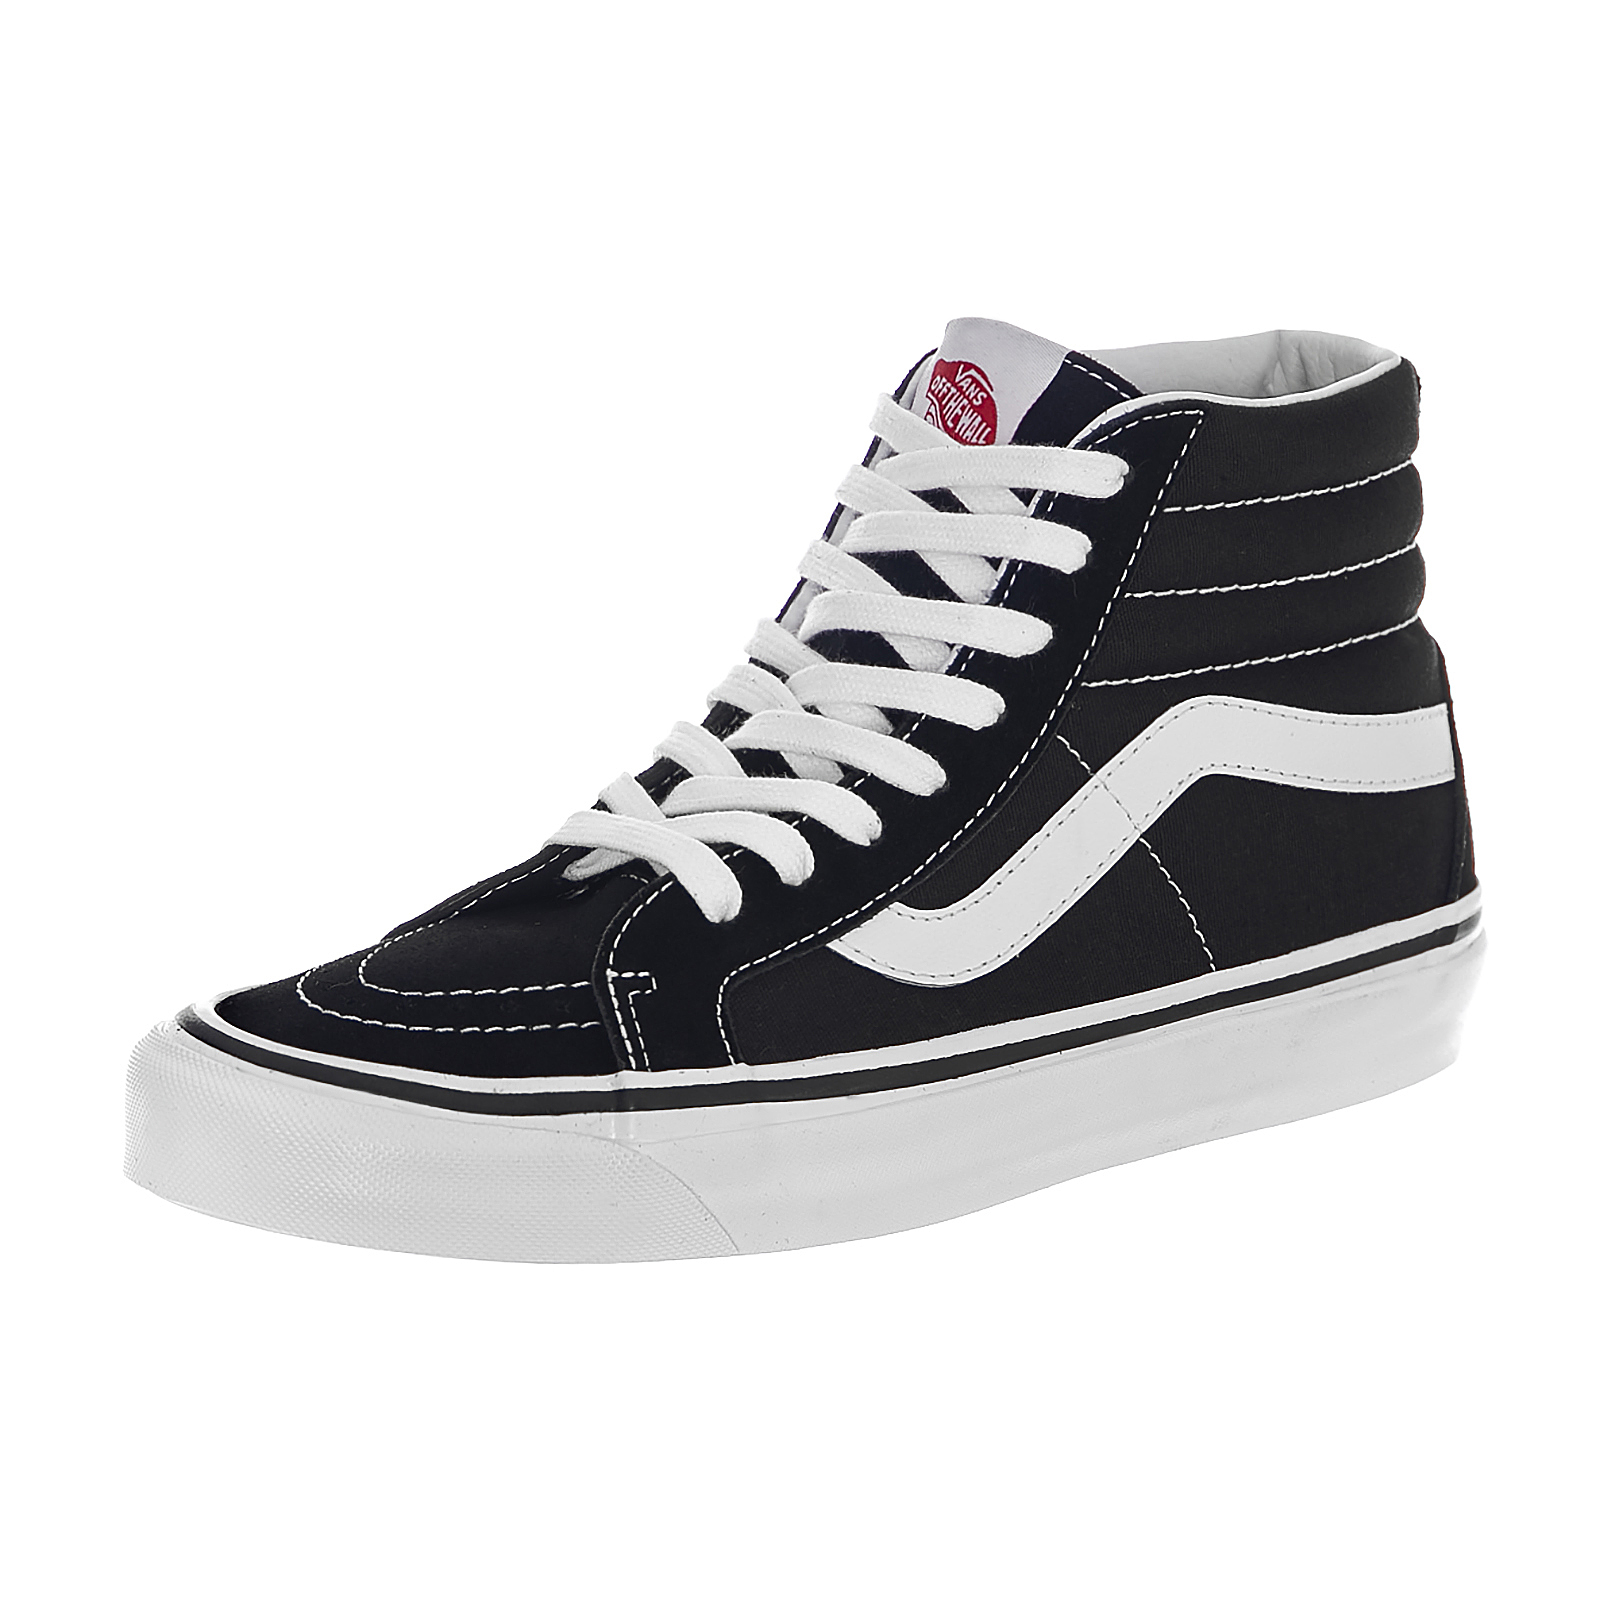 Factory Anaheim Nero Hi Black White 38 Vans Sk8 True Dx Sneakers qnXwpwTYv